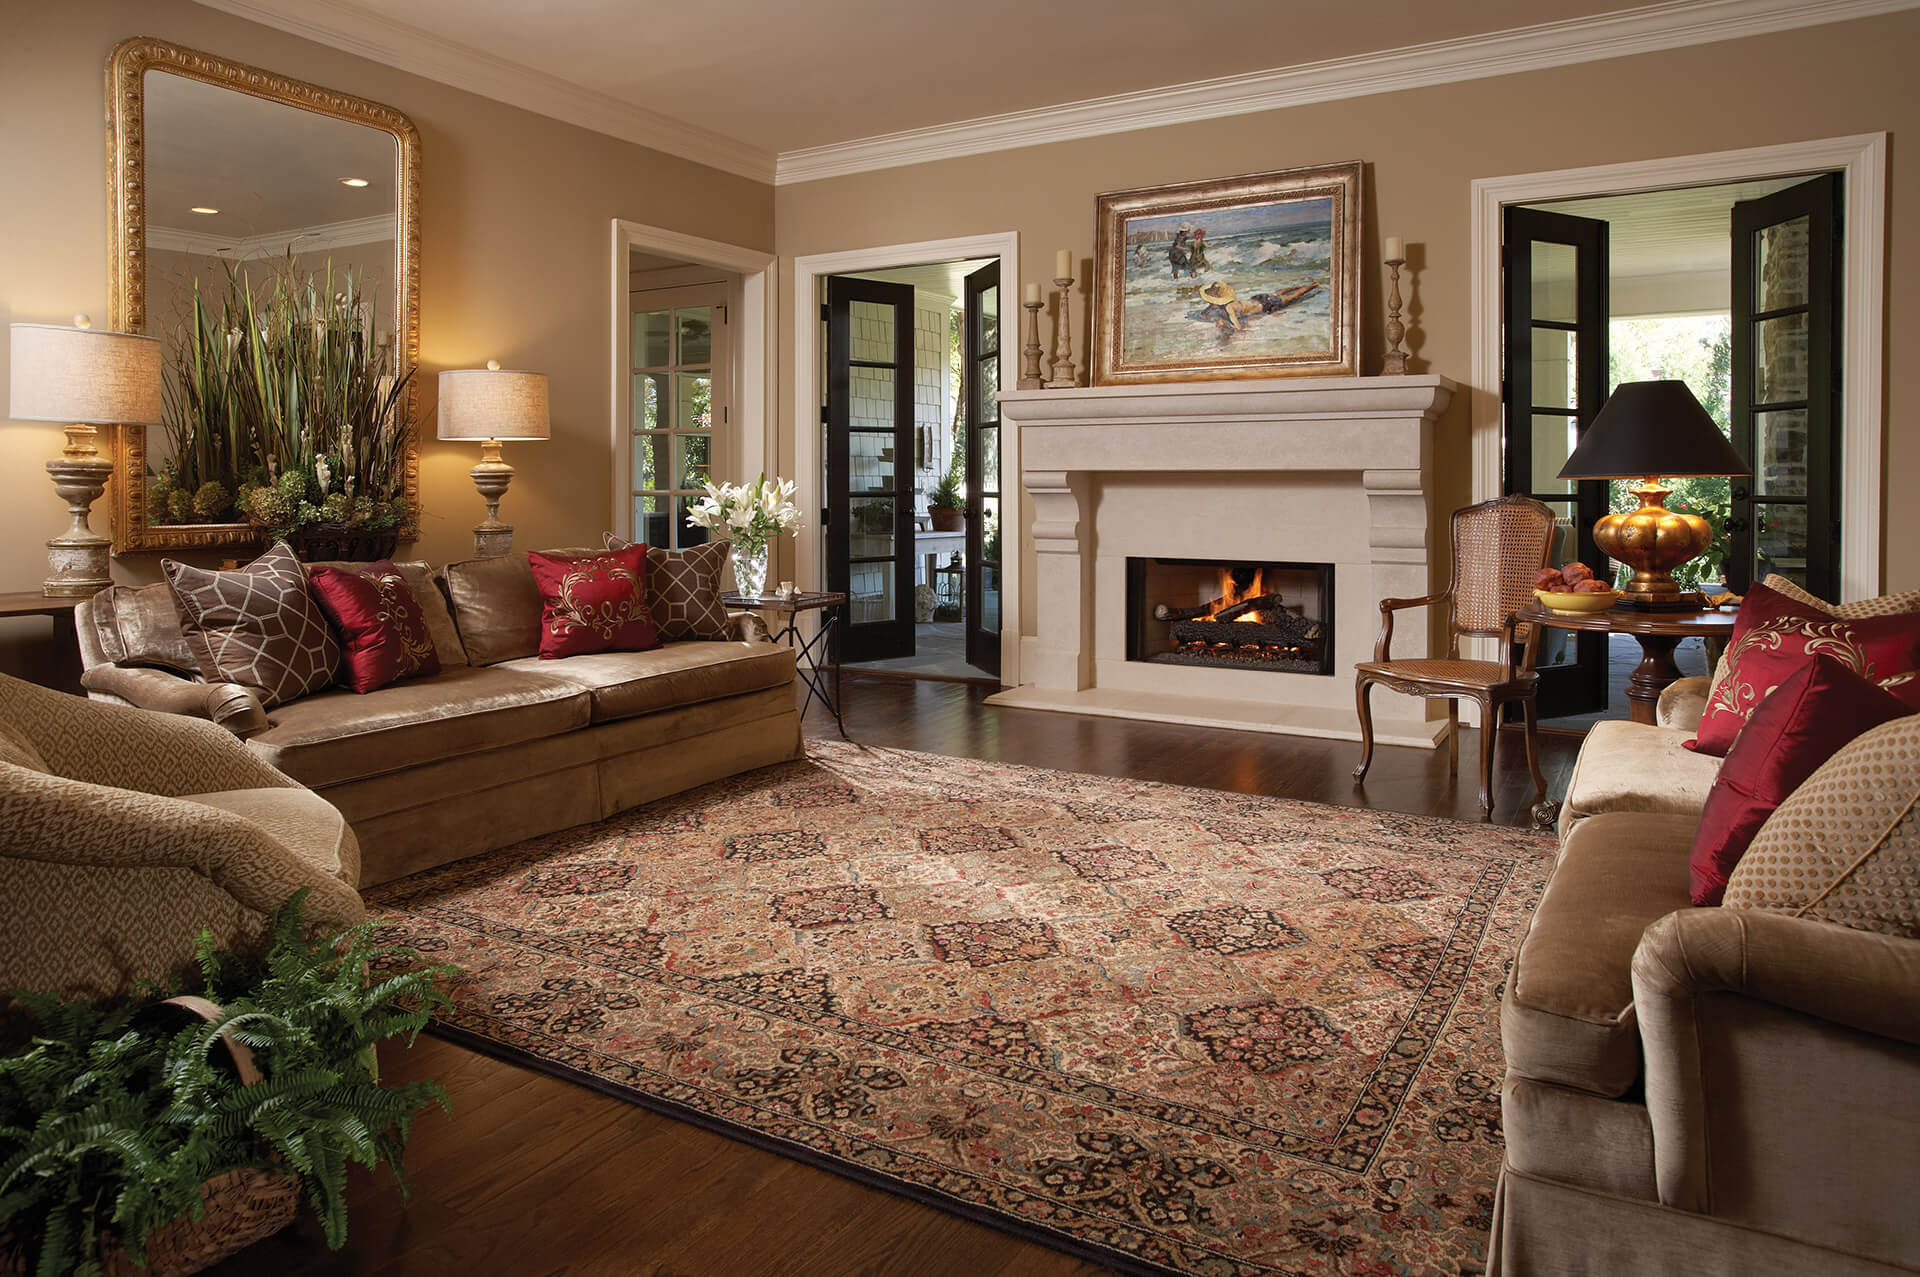 Coles Fine Flooring   Area Rugs for the Living Room